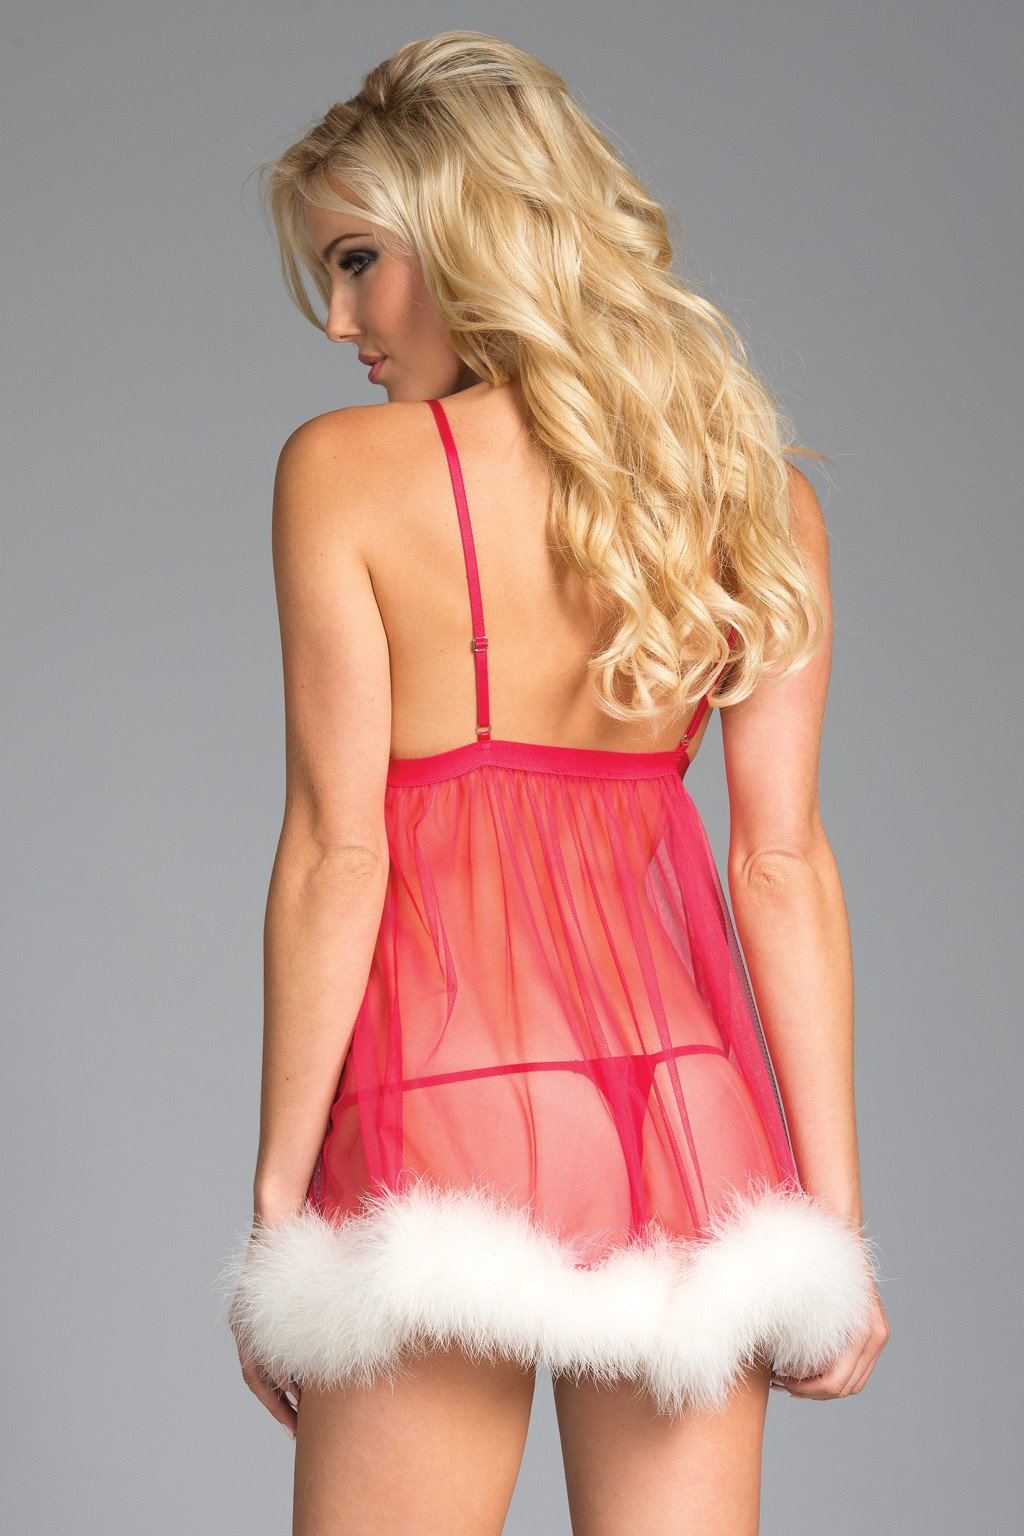 753690e6d ... Pink Babydoll Lingerie Sheer Marabou Feather Trim Satin Bow Accent